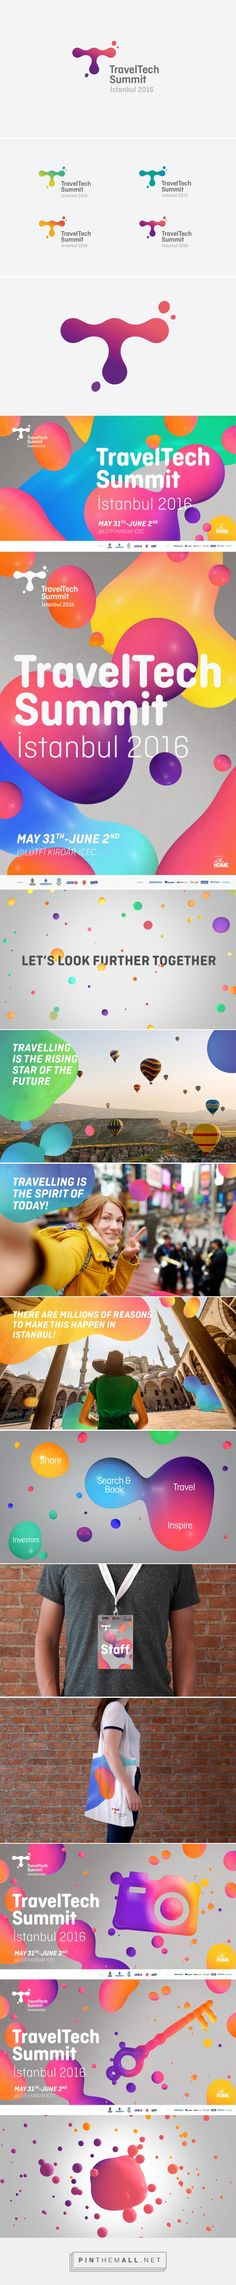 Travel Tech Summit on Behance - created via https://pinthemall.net